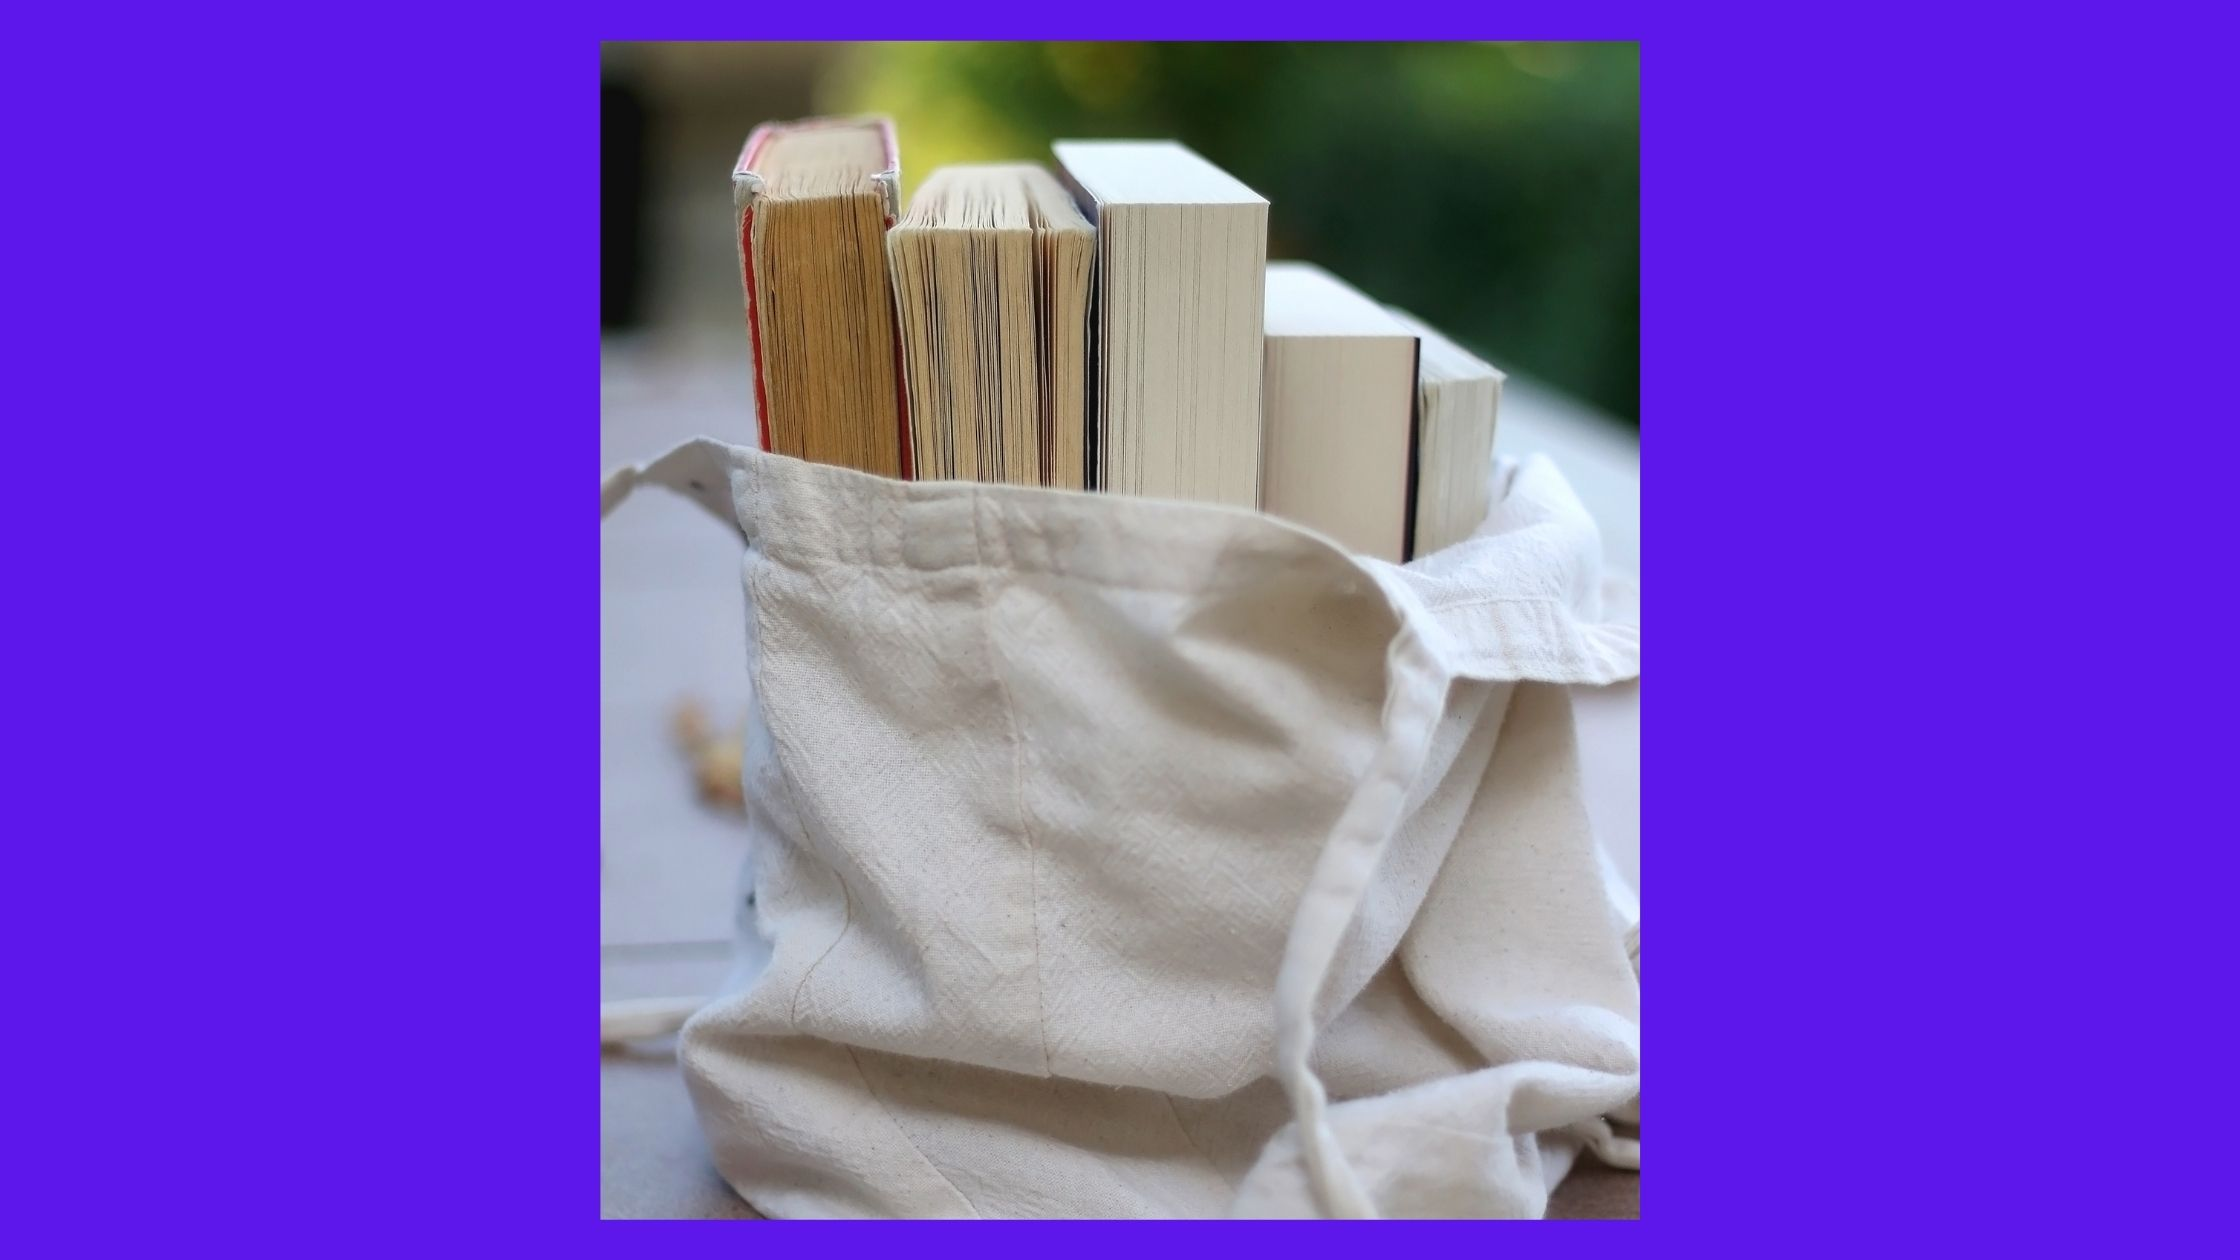 photo of a book bag with books showing